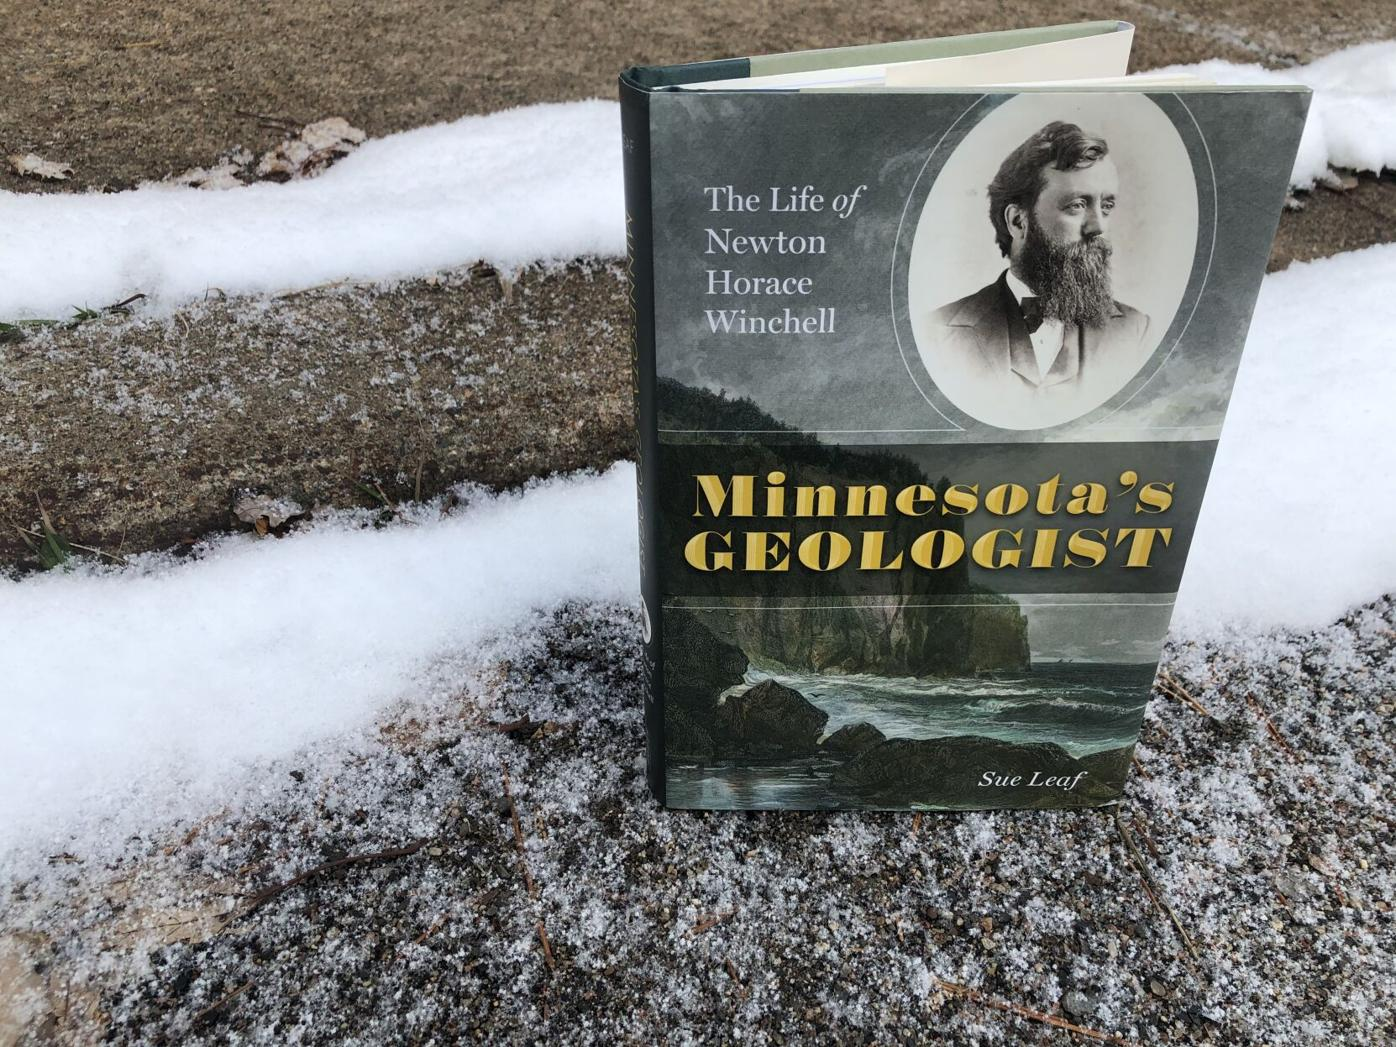 'Minnesota's Geologist: The Life of Newton Horace Winchell'